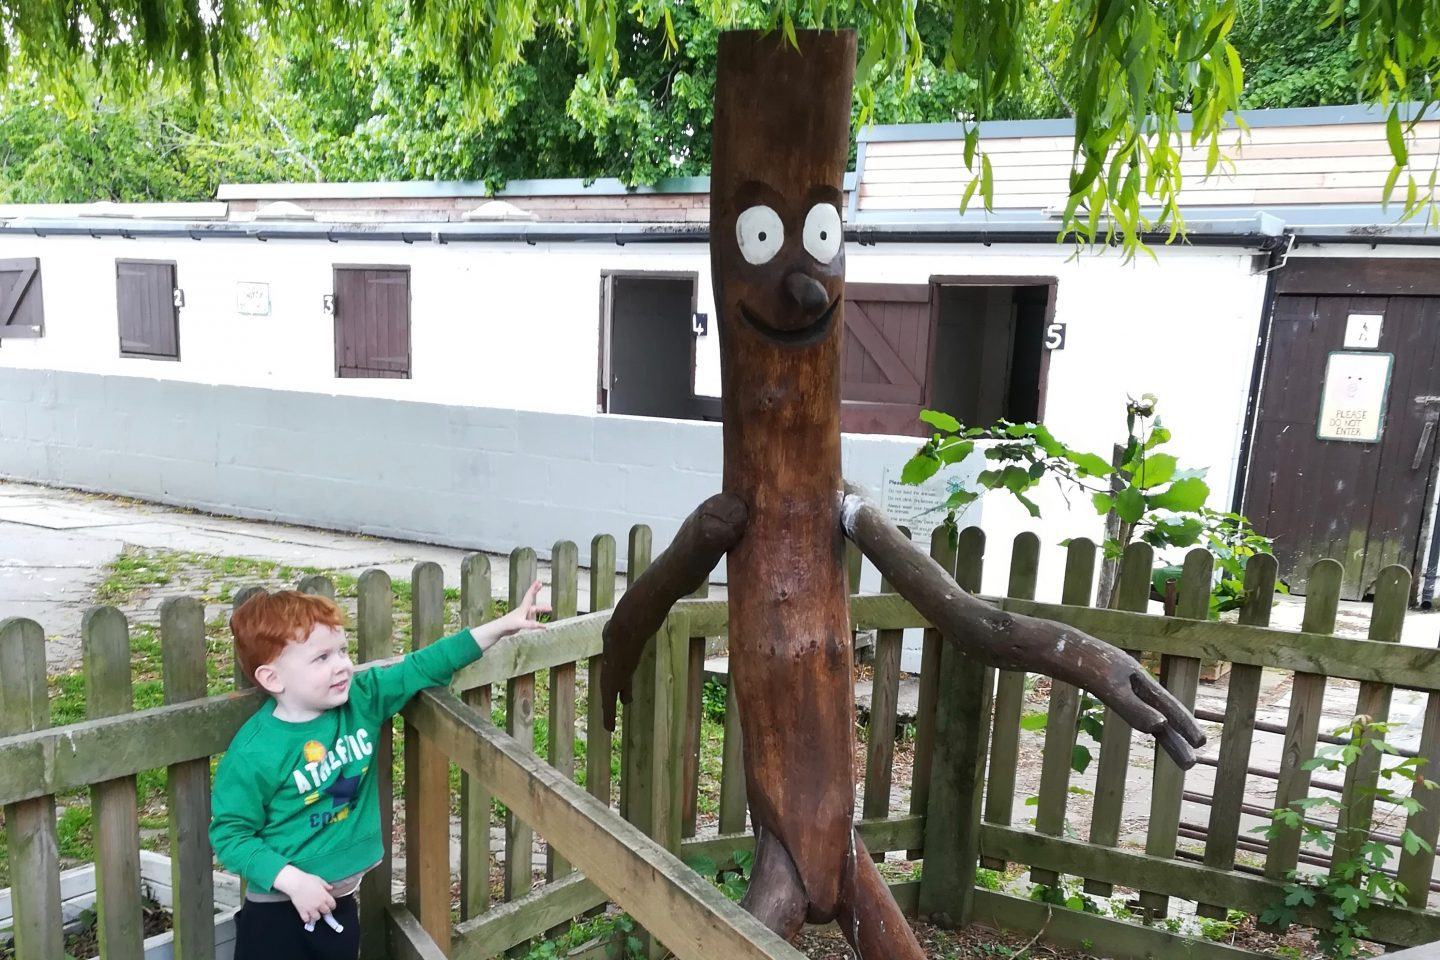 a young child standing next to a large model of Stick Man